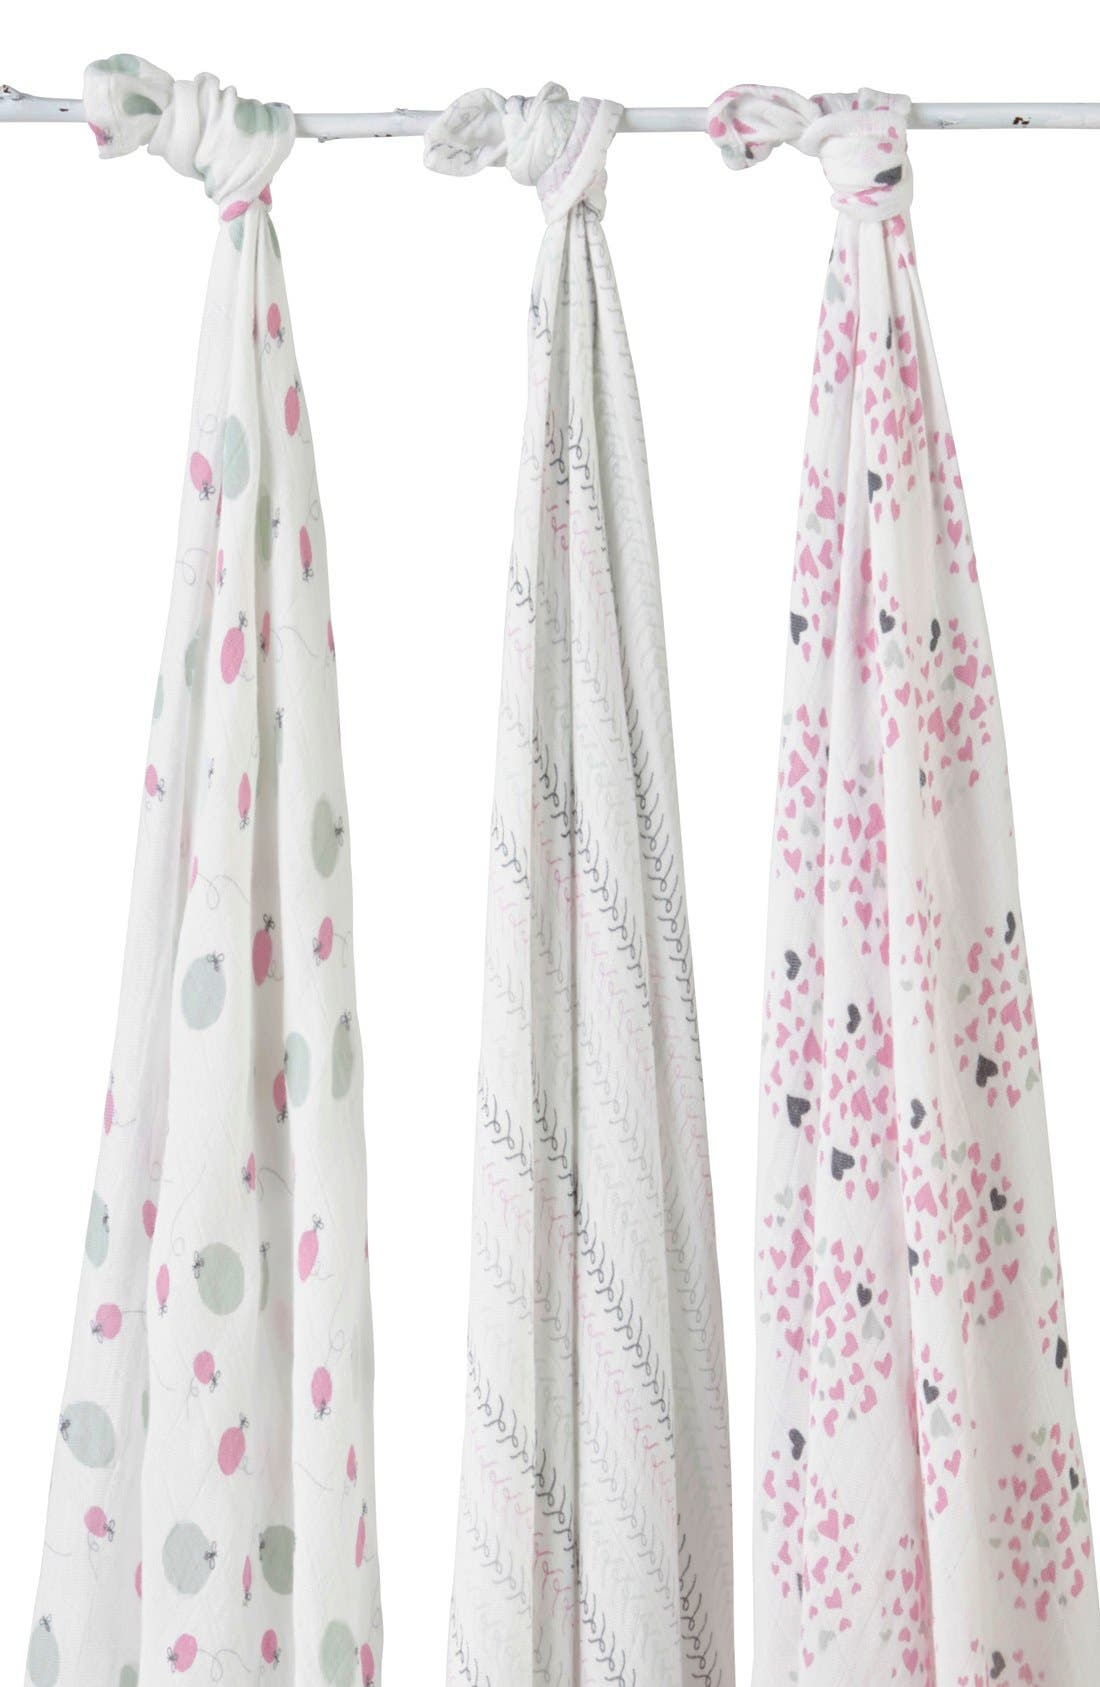 Main Image - aden + anais 'Hearts & Fireflies' Swaddling Cloths (3-Pack) (Nordstrom Exclusive)